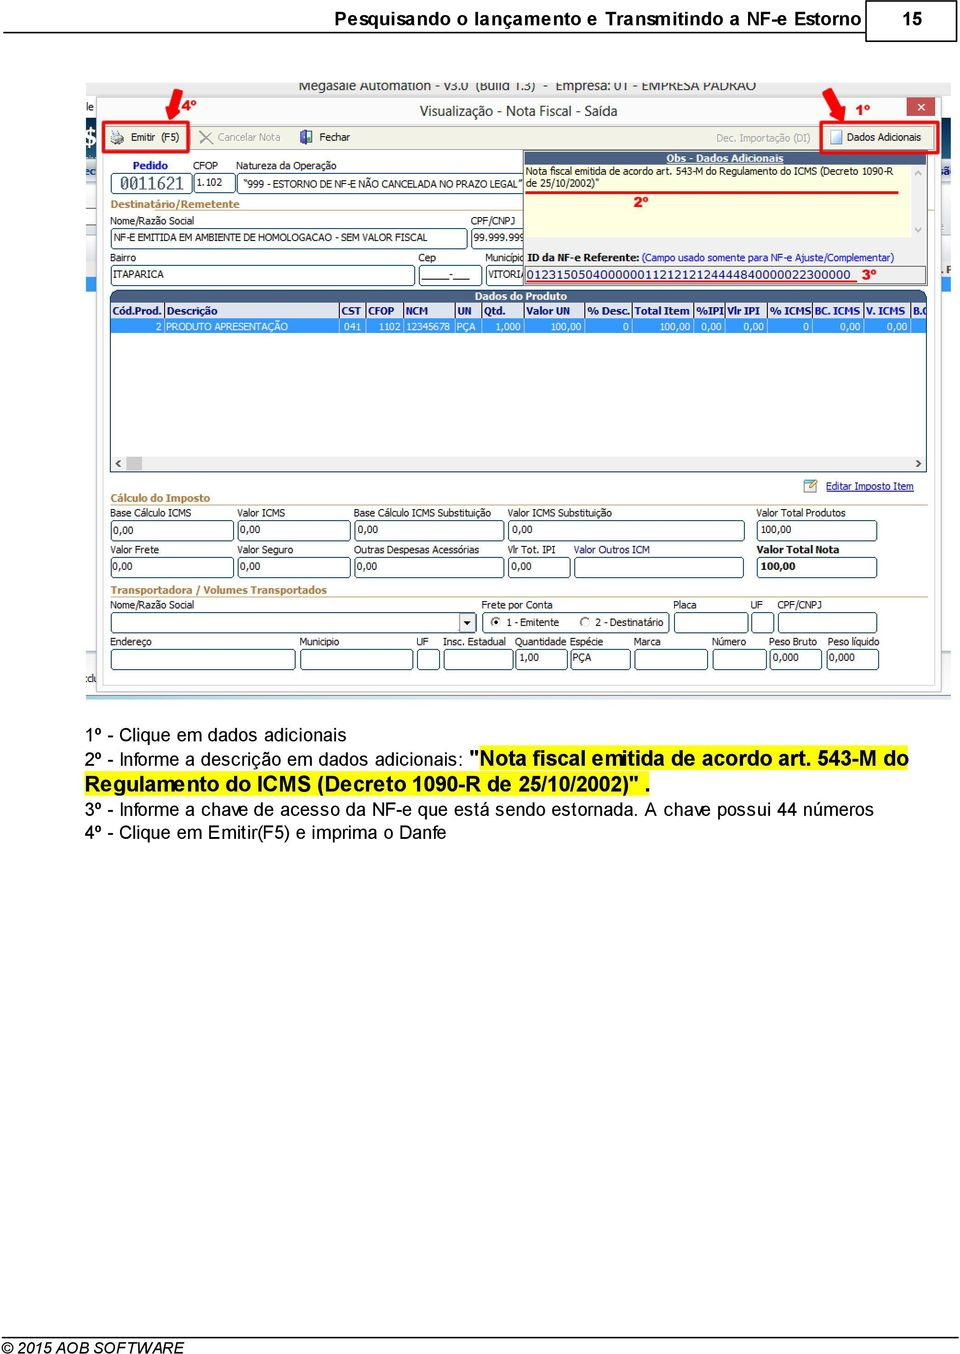 "543-M do Regulamento do ICMS (Decreto 1090-R de 25/10/2002)""."